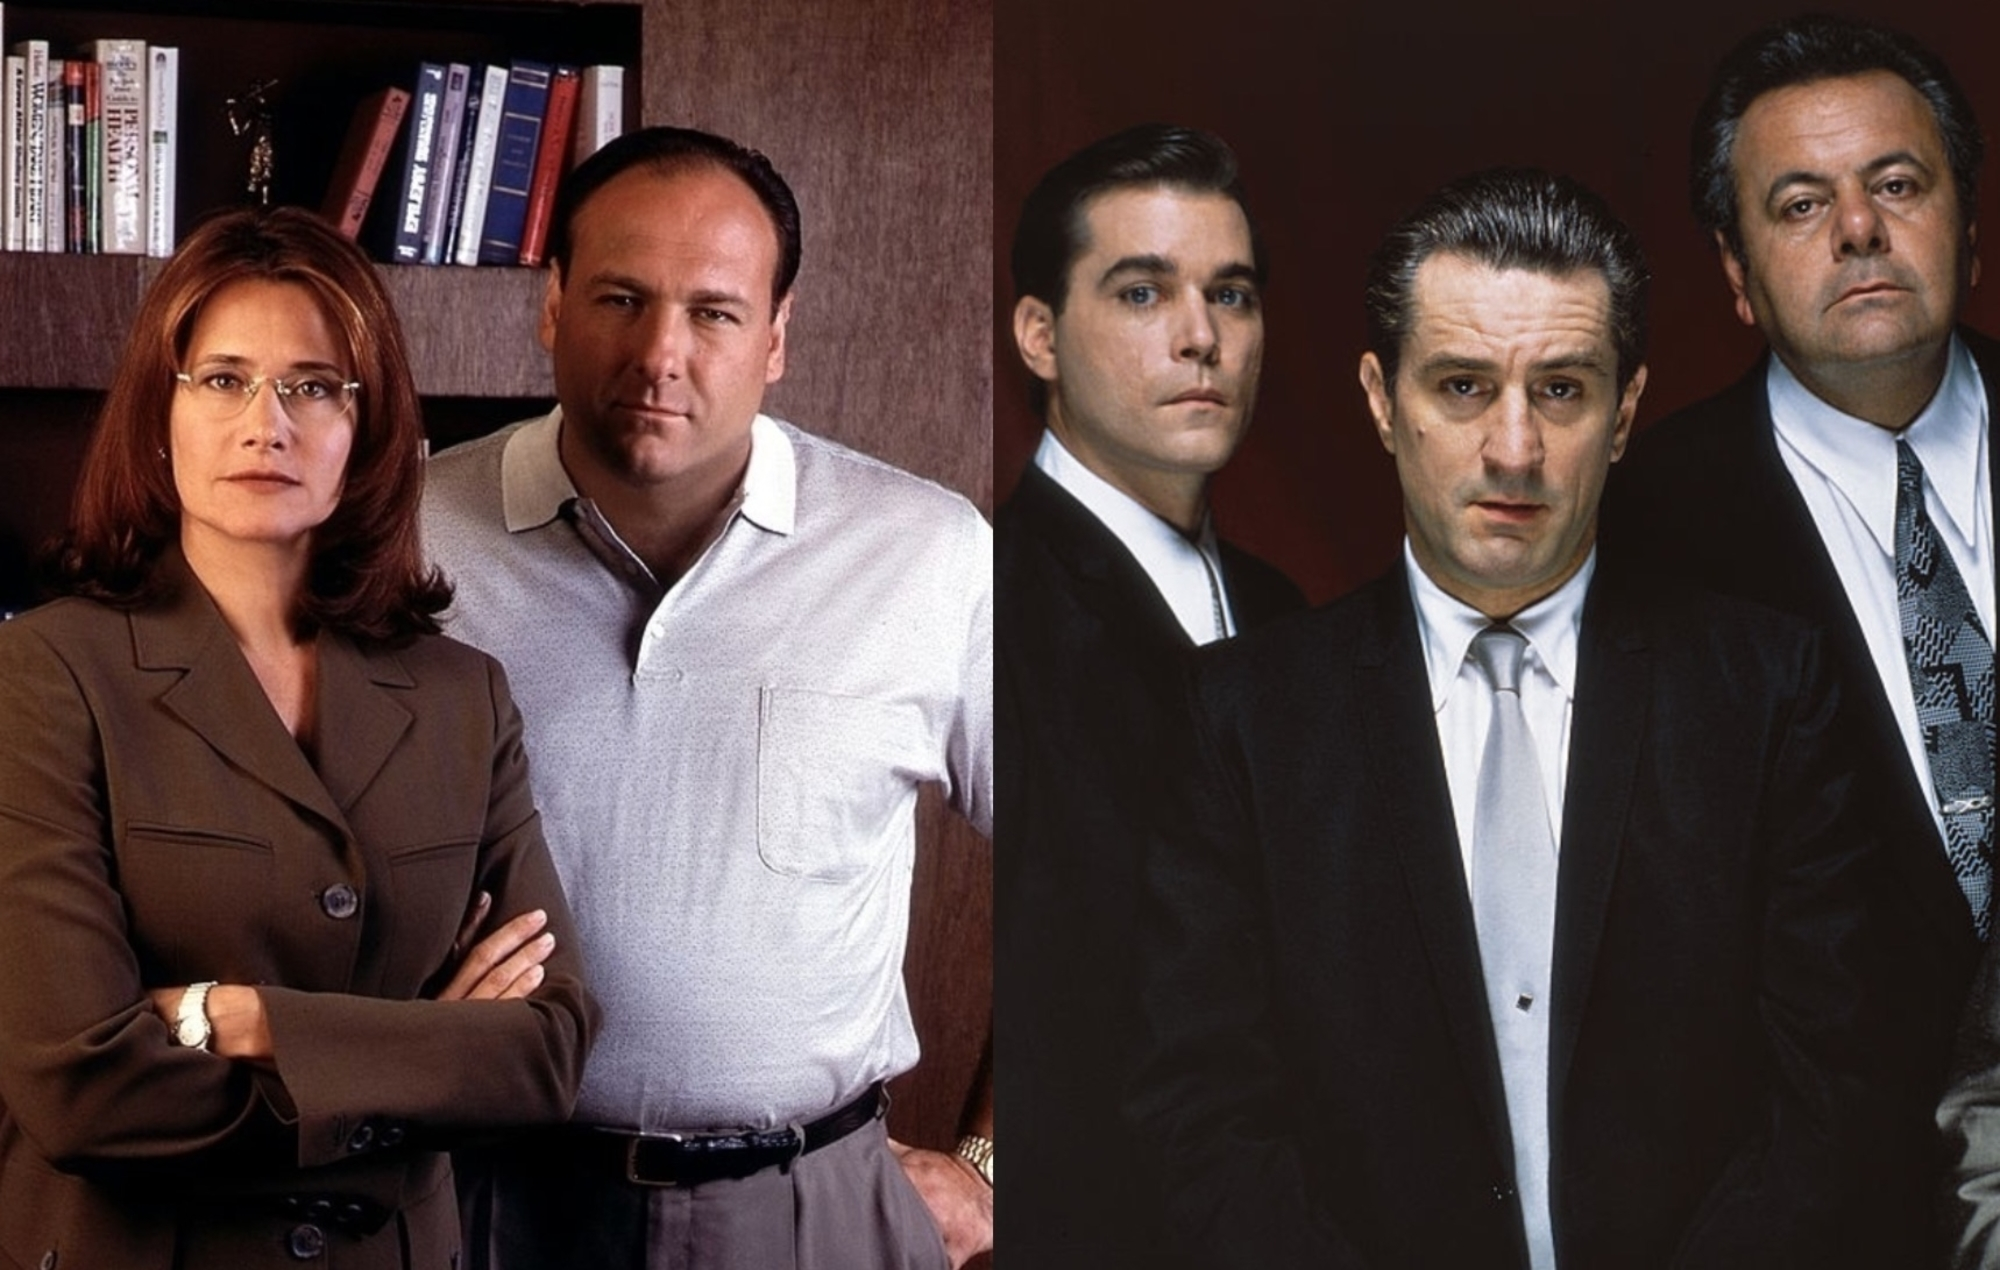 https://celebritycontent.com/2020/08/03/the-sopranos-and-goodfellas-writers-to-collaborate-on-new-mafia-series/